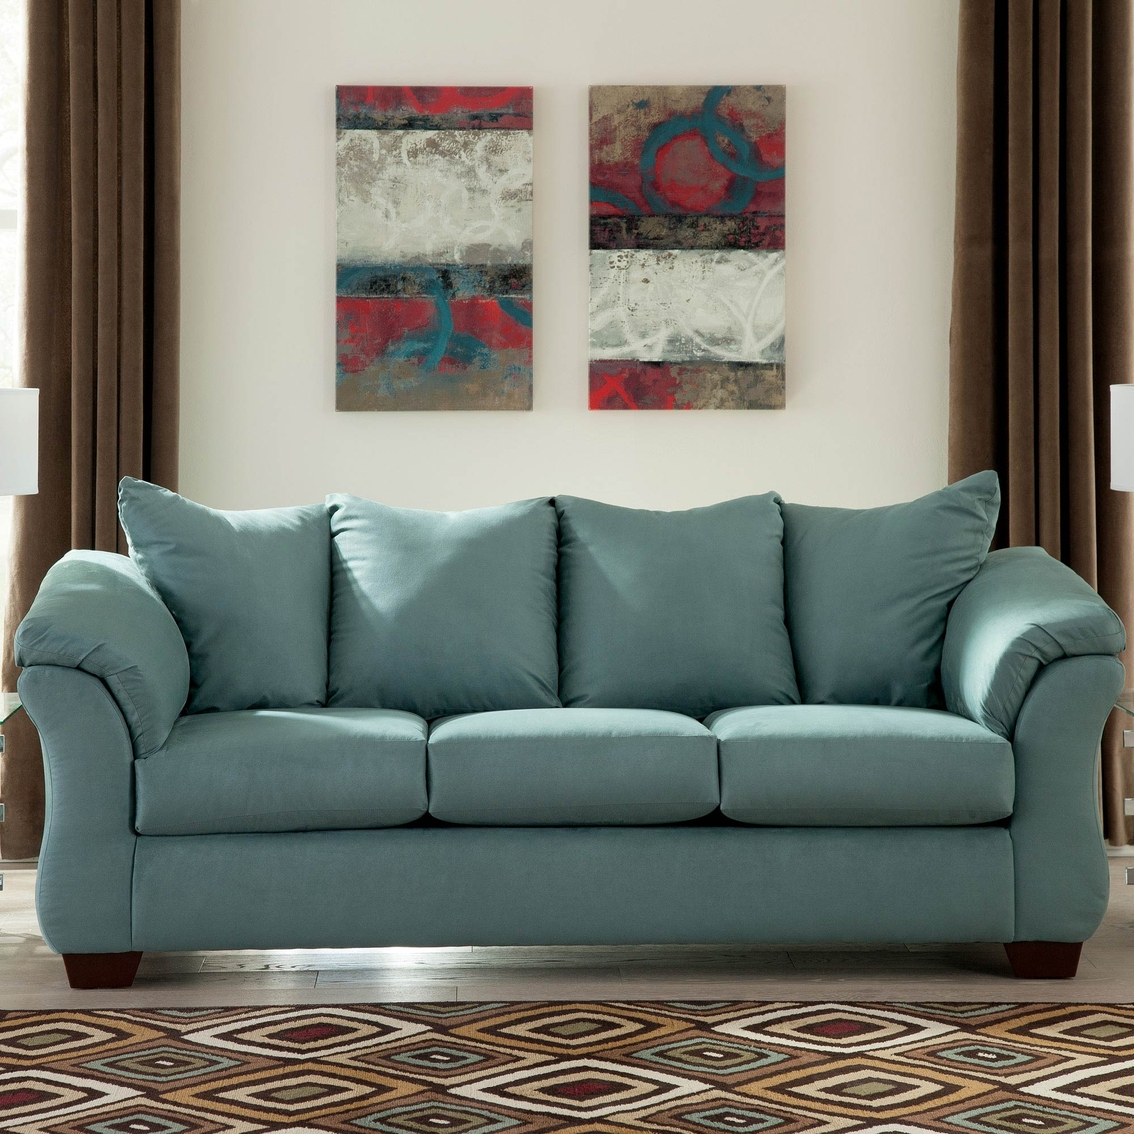 Signature Design By Ashley Darcy Sofa Sofas Couches Home Appliances Shop The Exchange